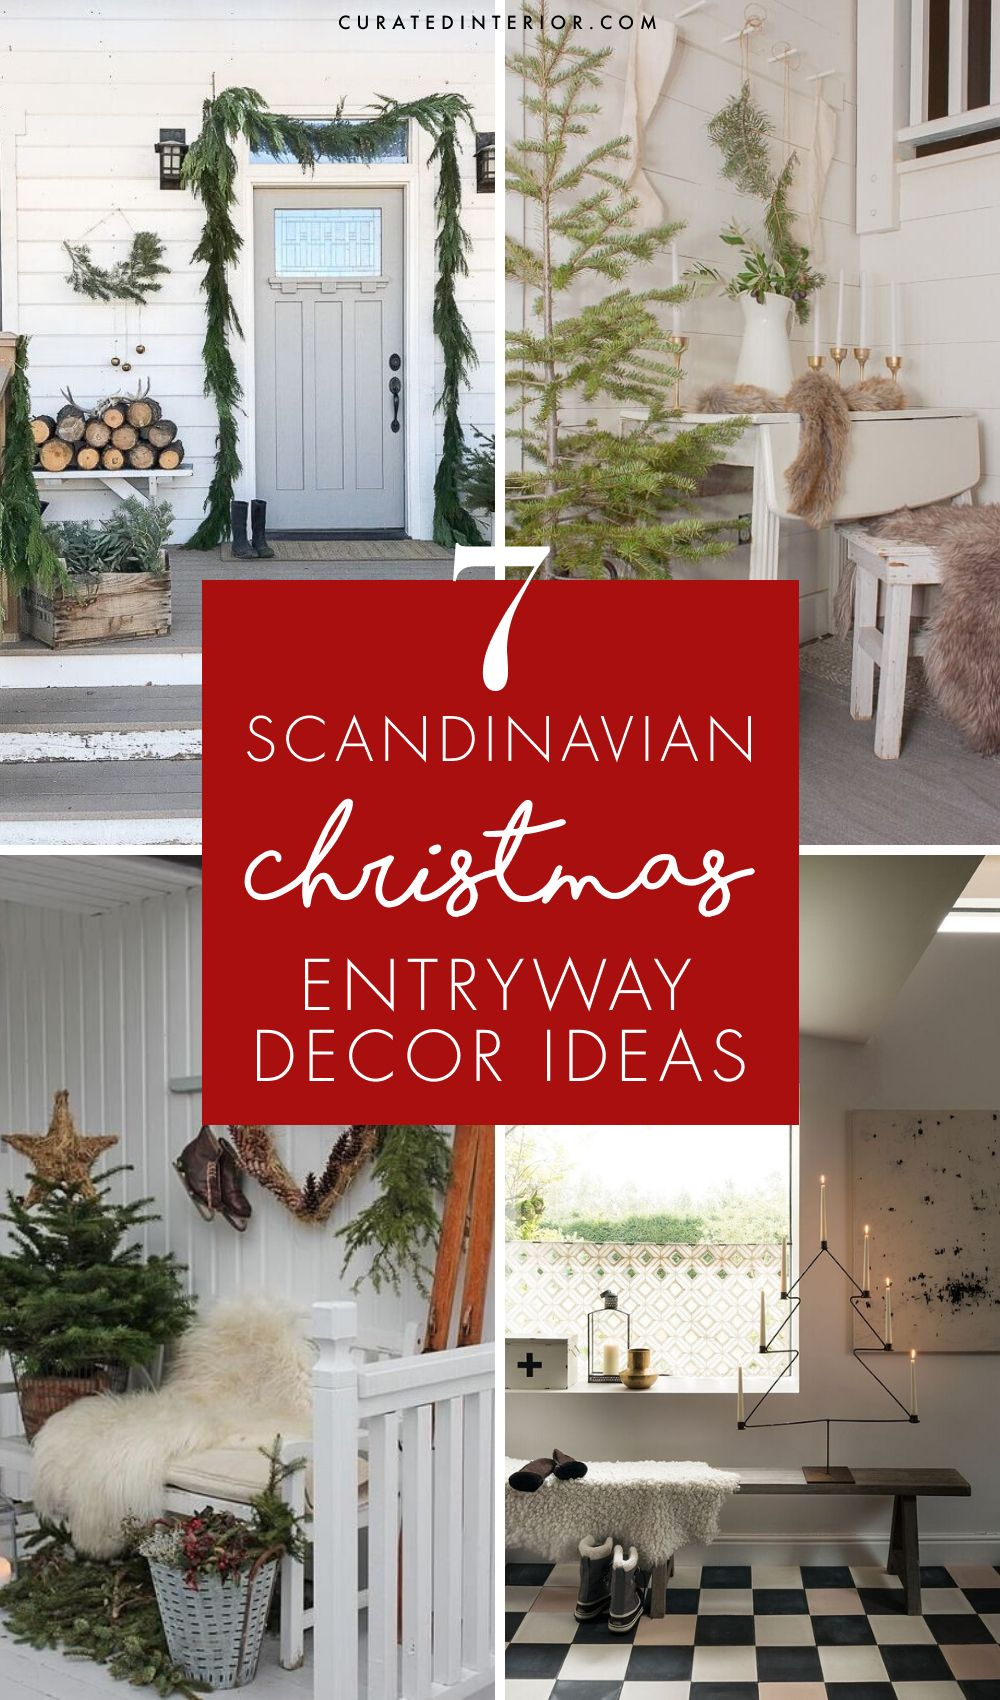 7 Scandi Christmas Entryway Decor Ideas